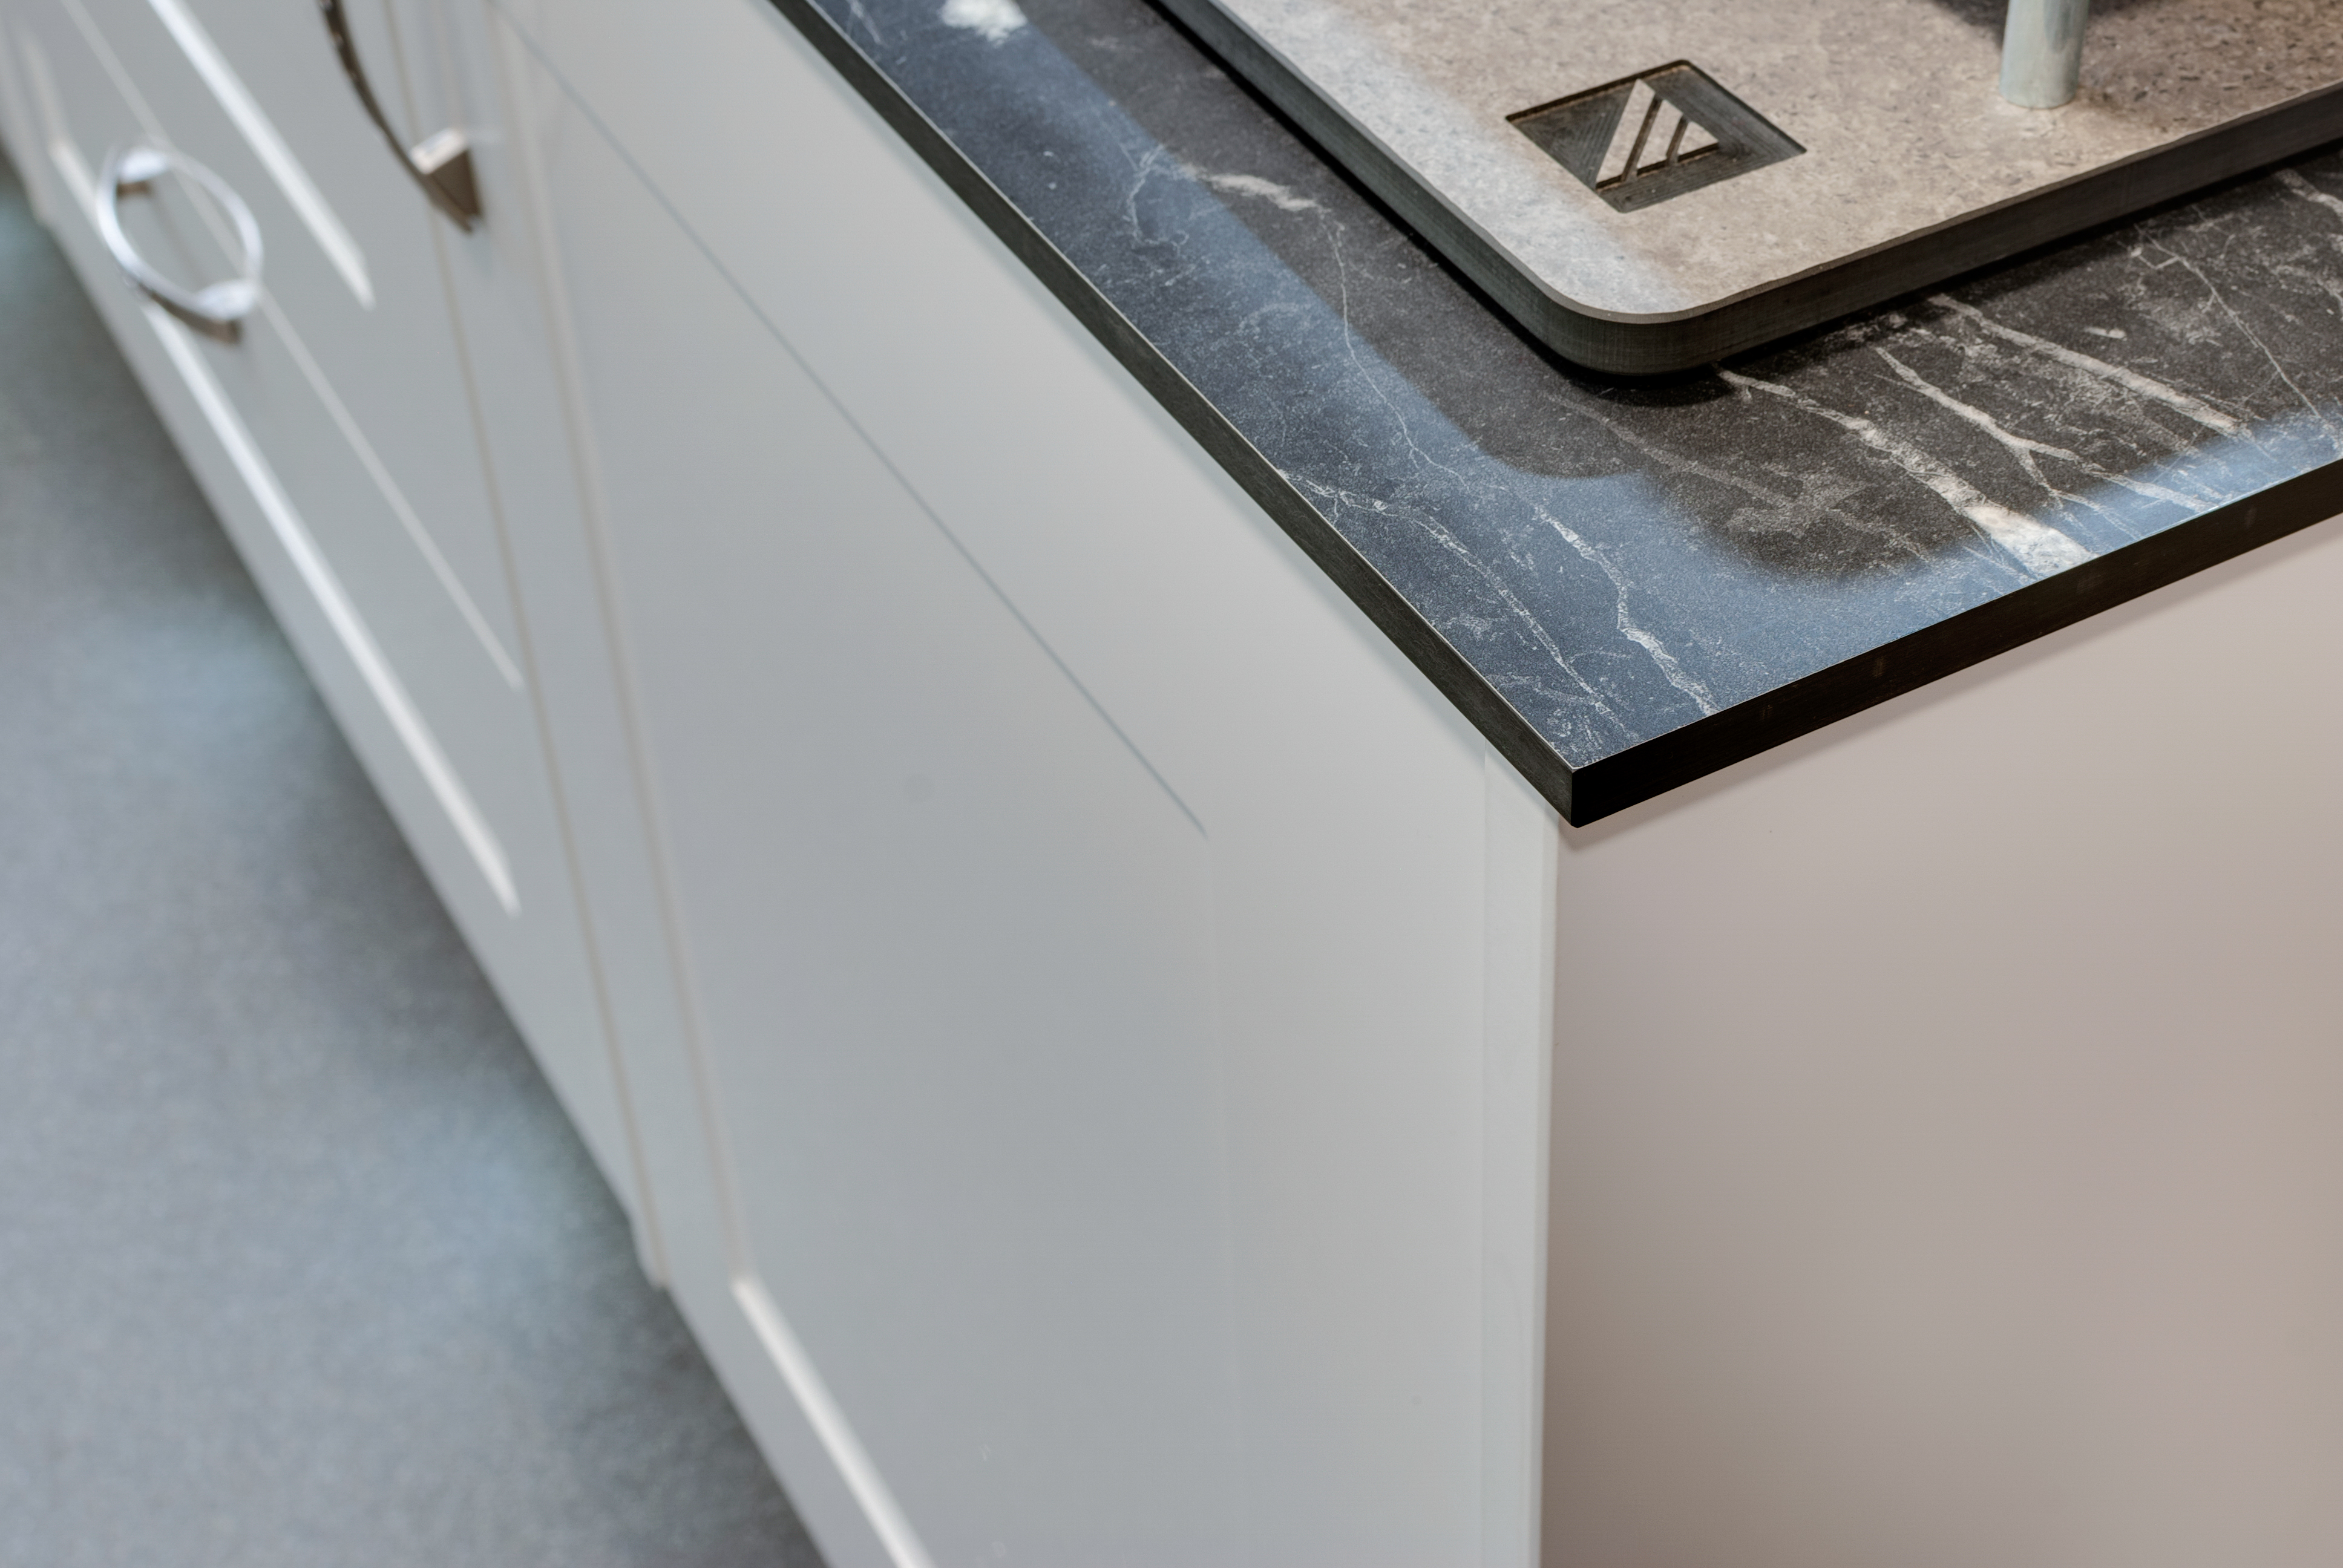 New Duropal Compact Solid Laminate Worktops